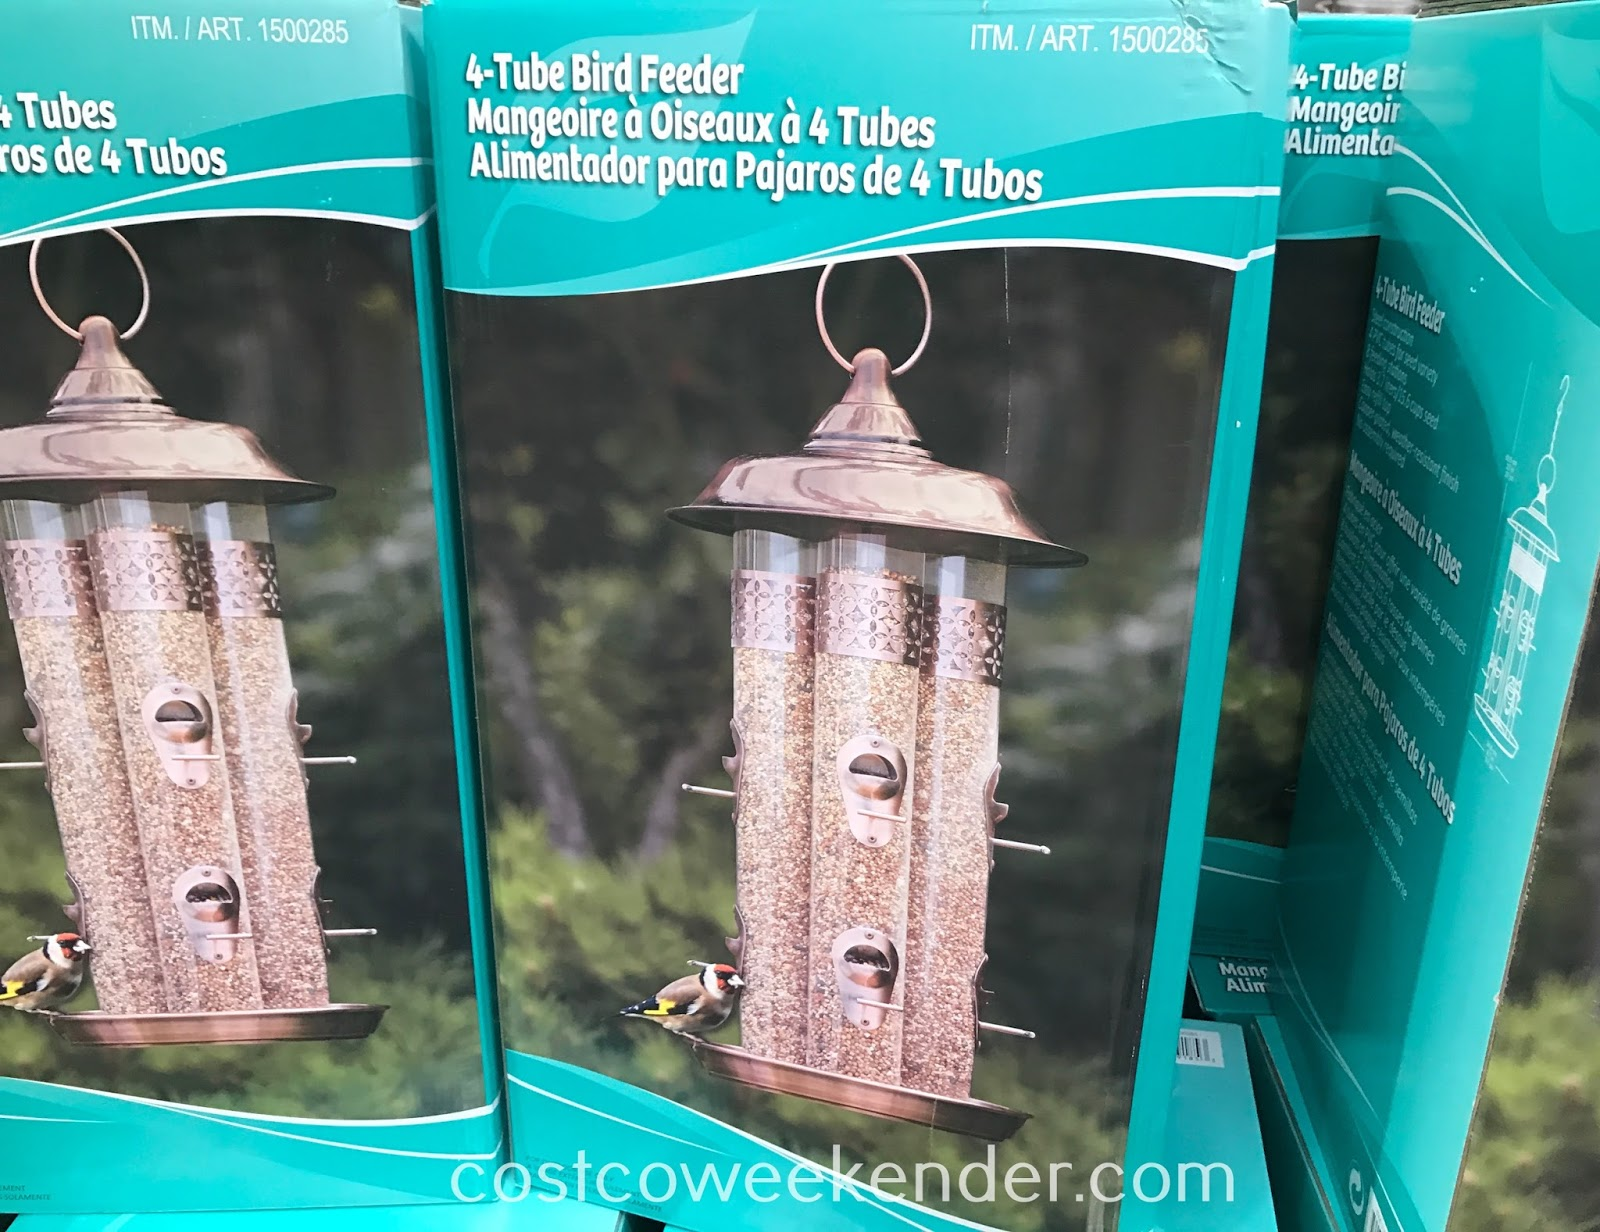 Invite birds to come over with the StyleCraft 4-Tube Bird Feeder